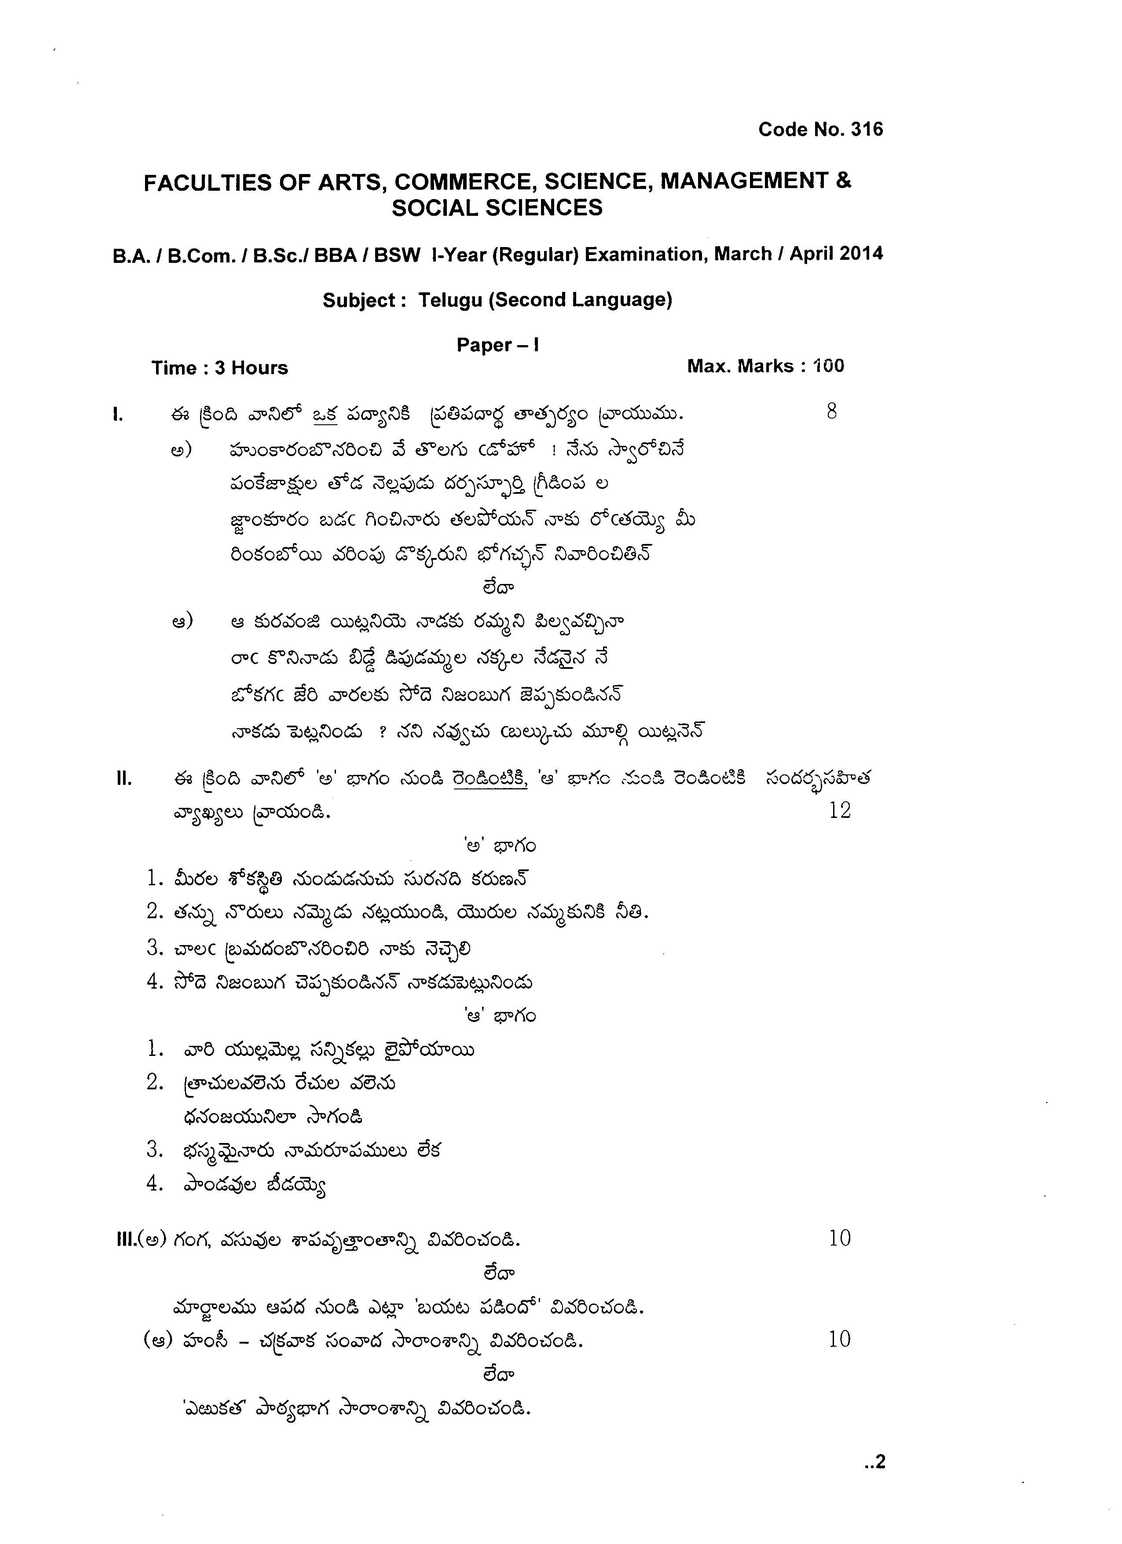 Previous Year Question Papers of Osmania University - 2019